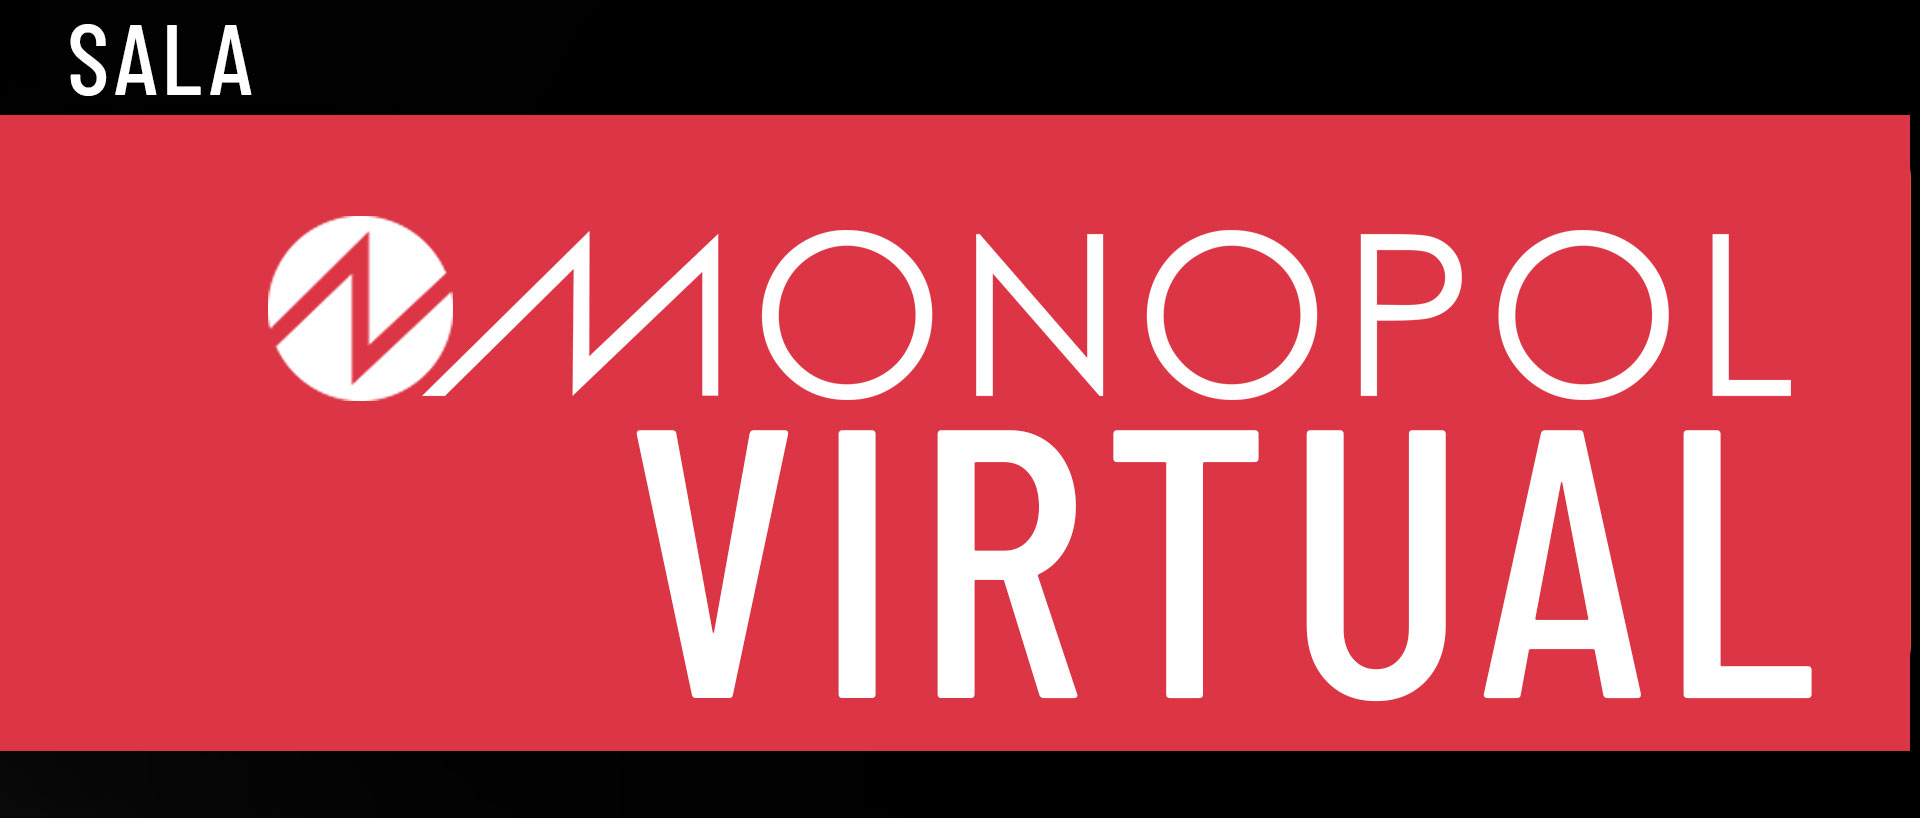 MONOPOL-VIRTUAL.jpg